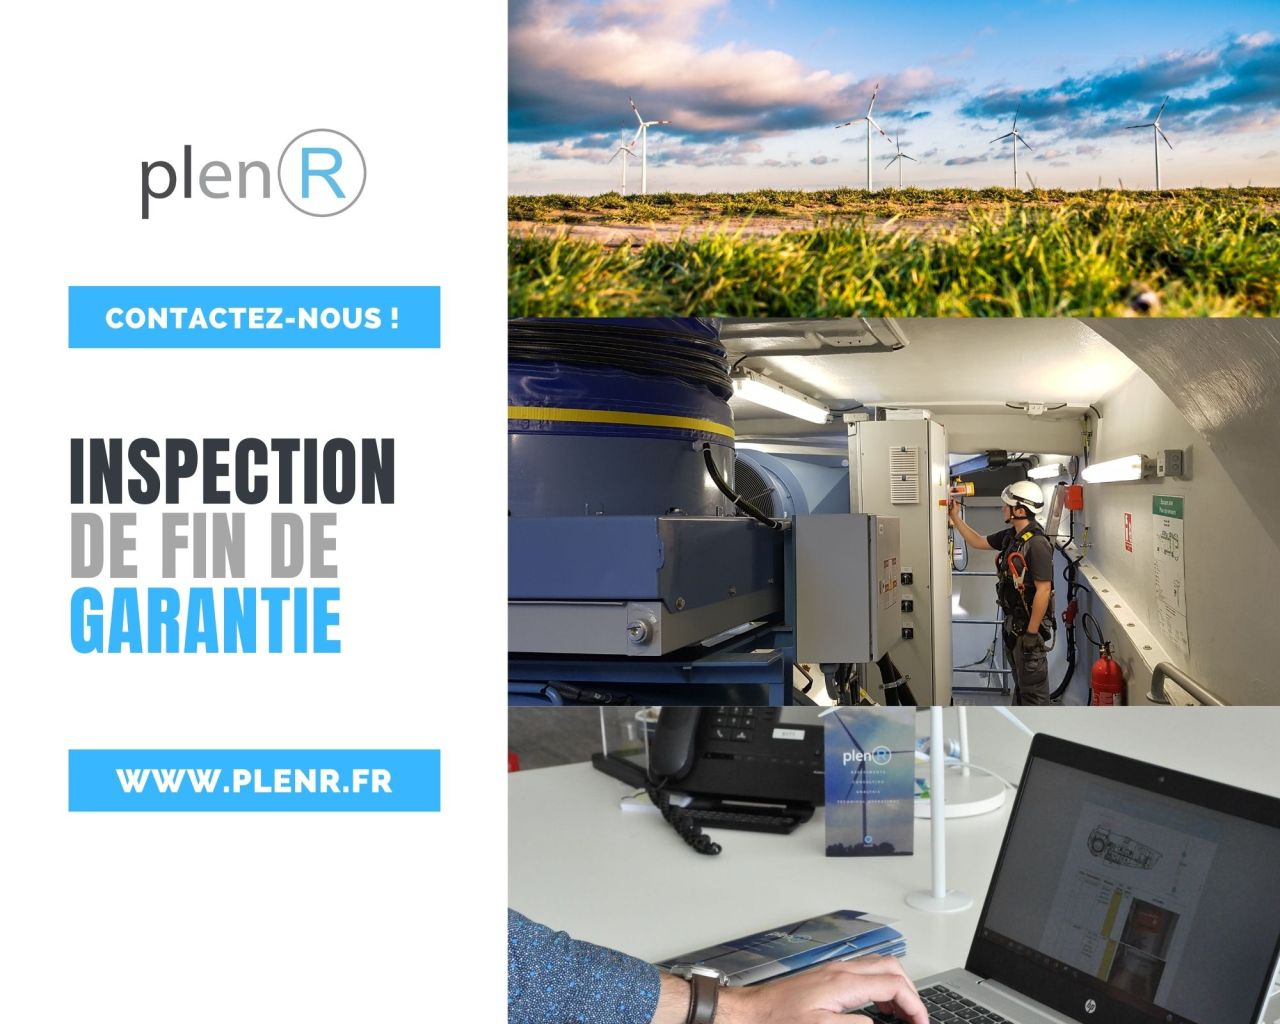 PlenR inspection de fin de garantie